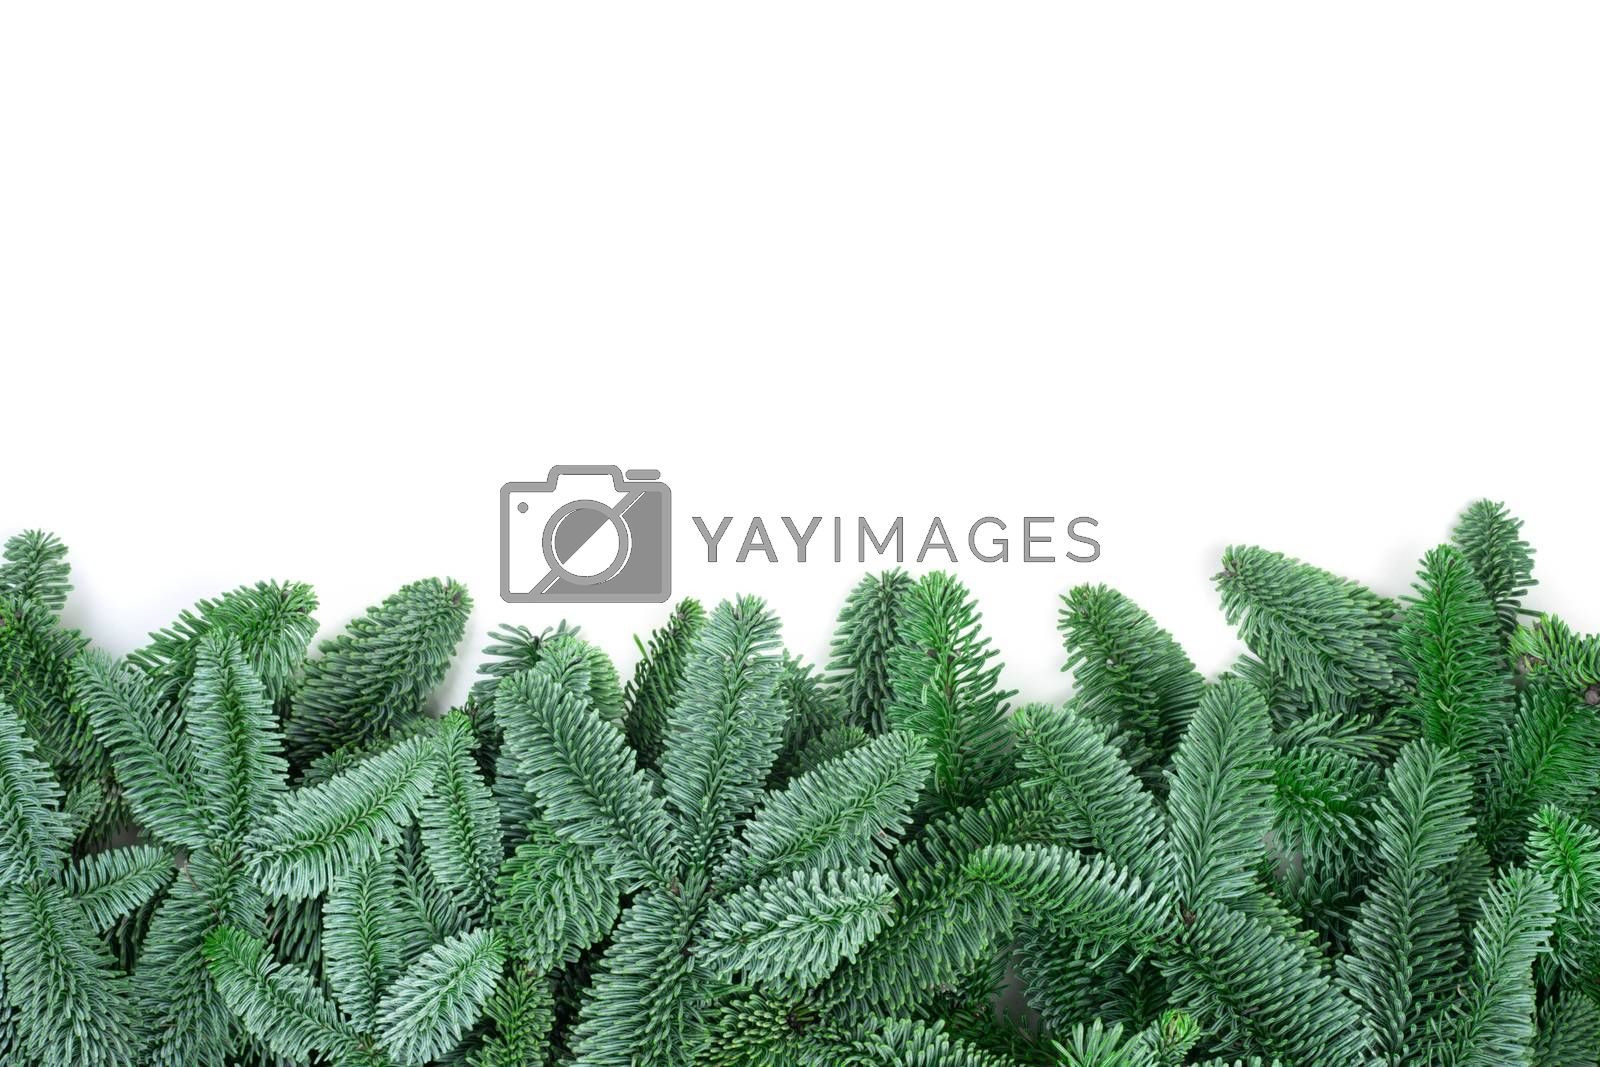 Traditional green christmas tree noble fir border frame isolated on white background copy space for text